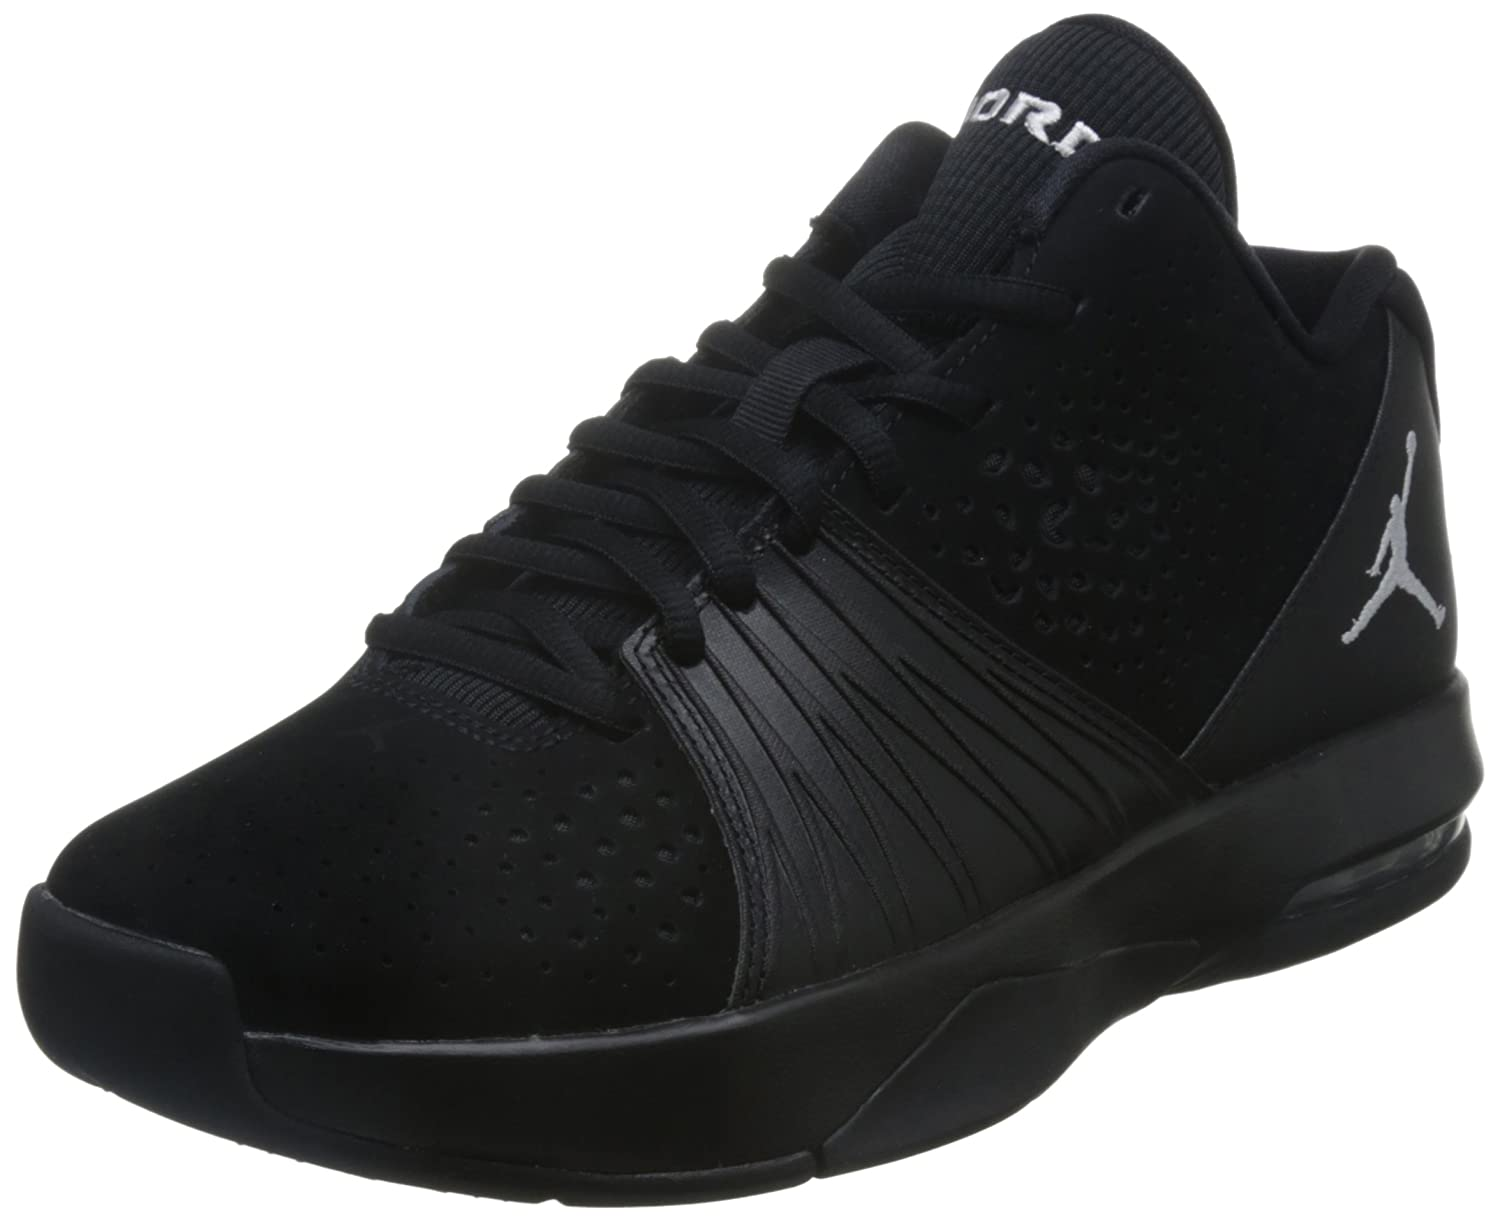 [807546-010] Air Jordan Jordan 5 AM Mens Sneakers Air JORDANBLACK White NOIRM B0166870UW 10 D(M) US|Black